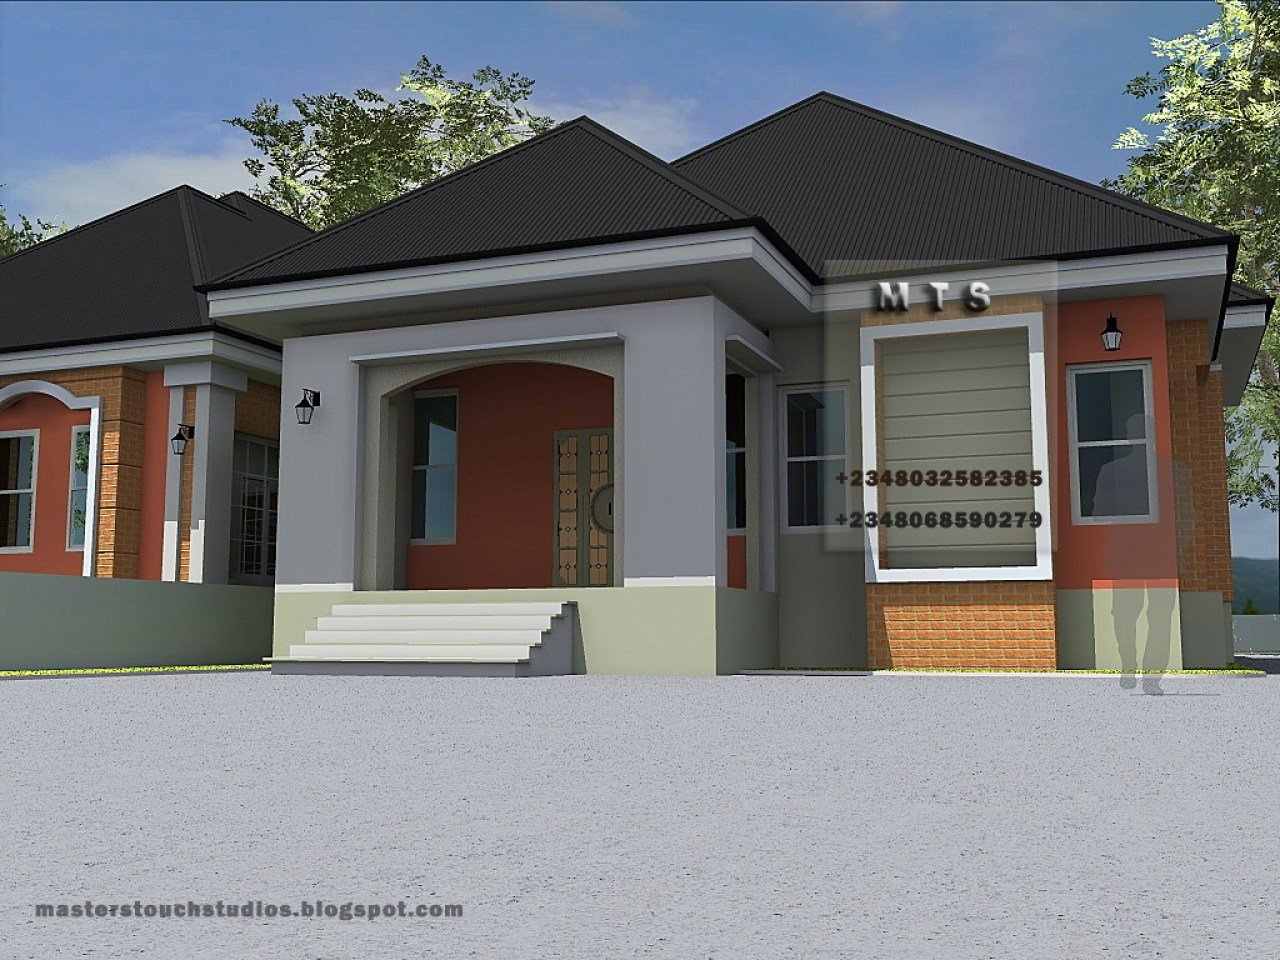 Best 3 Bedroom Bungalow Designs Modern 3 Bedroom House Plans 3 Bedroom Bungalow Mexzhouse Com With Pictures